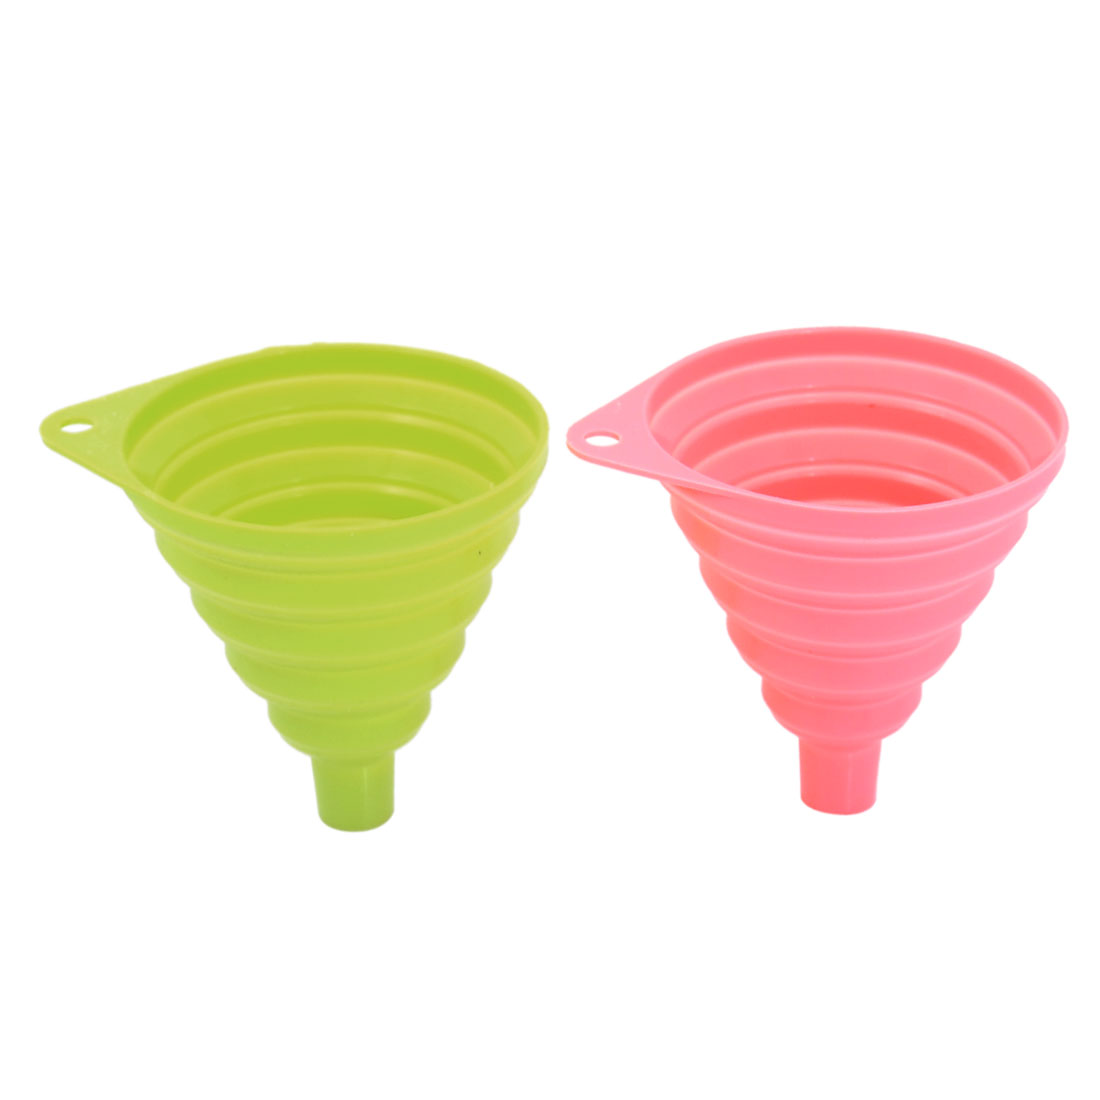 Silicone Cone Collapsible Foldable Filter Funnel Hopper Kitchen Tool 2pcs